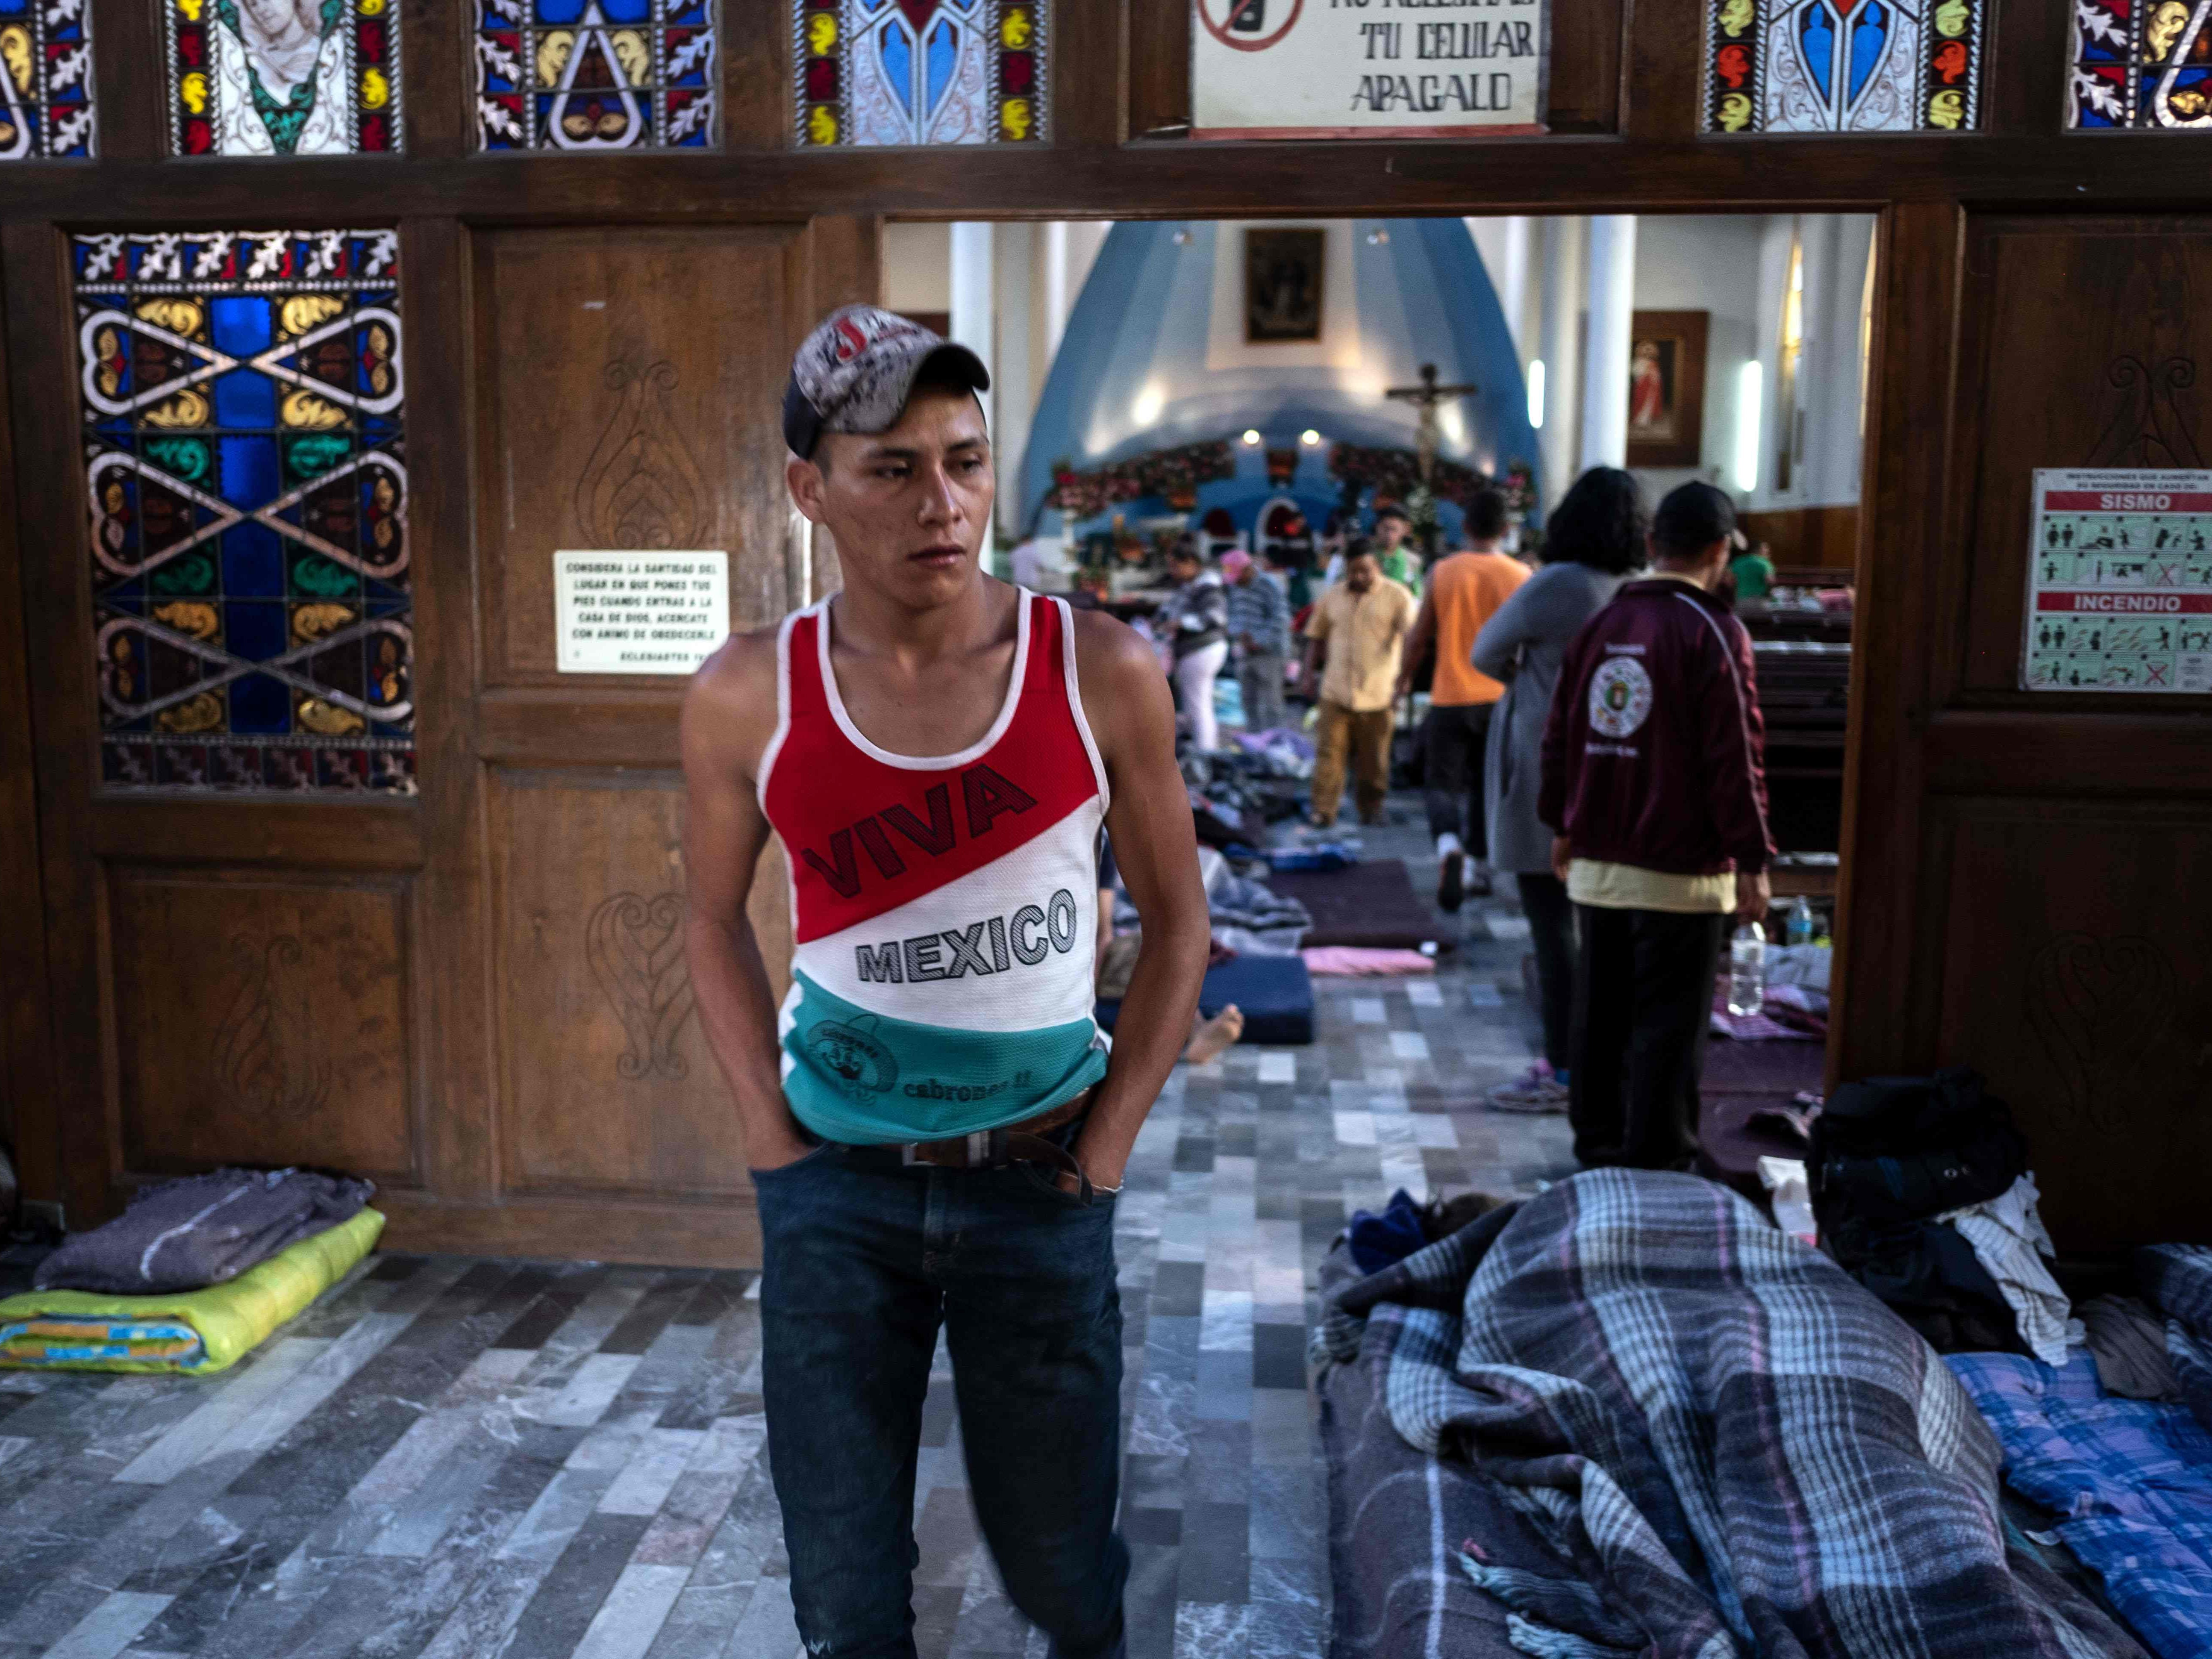 A migrant taking part in a caravan heading to the US, stands in the Asuncion temple, outfitted as a temporary shelter, in Puebla, Puebla state, Mexico, on Nov. 4, 2018.